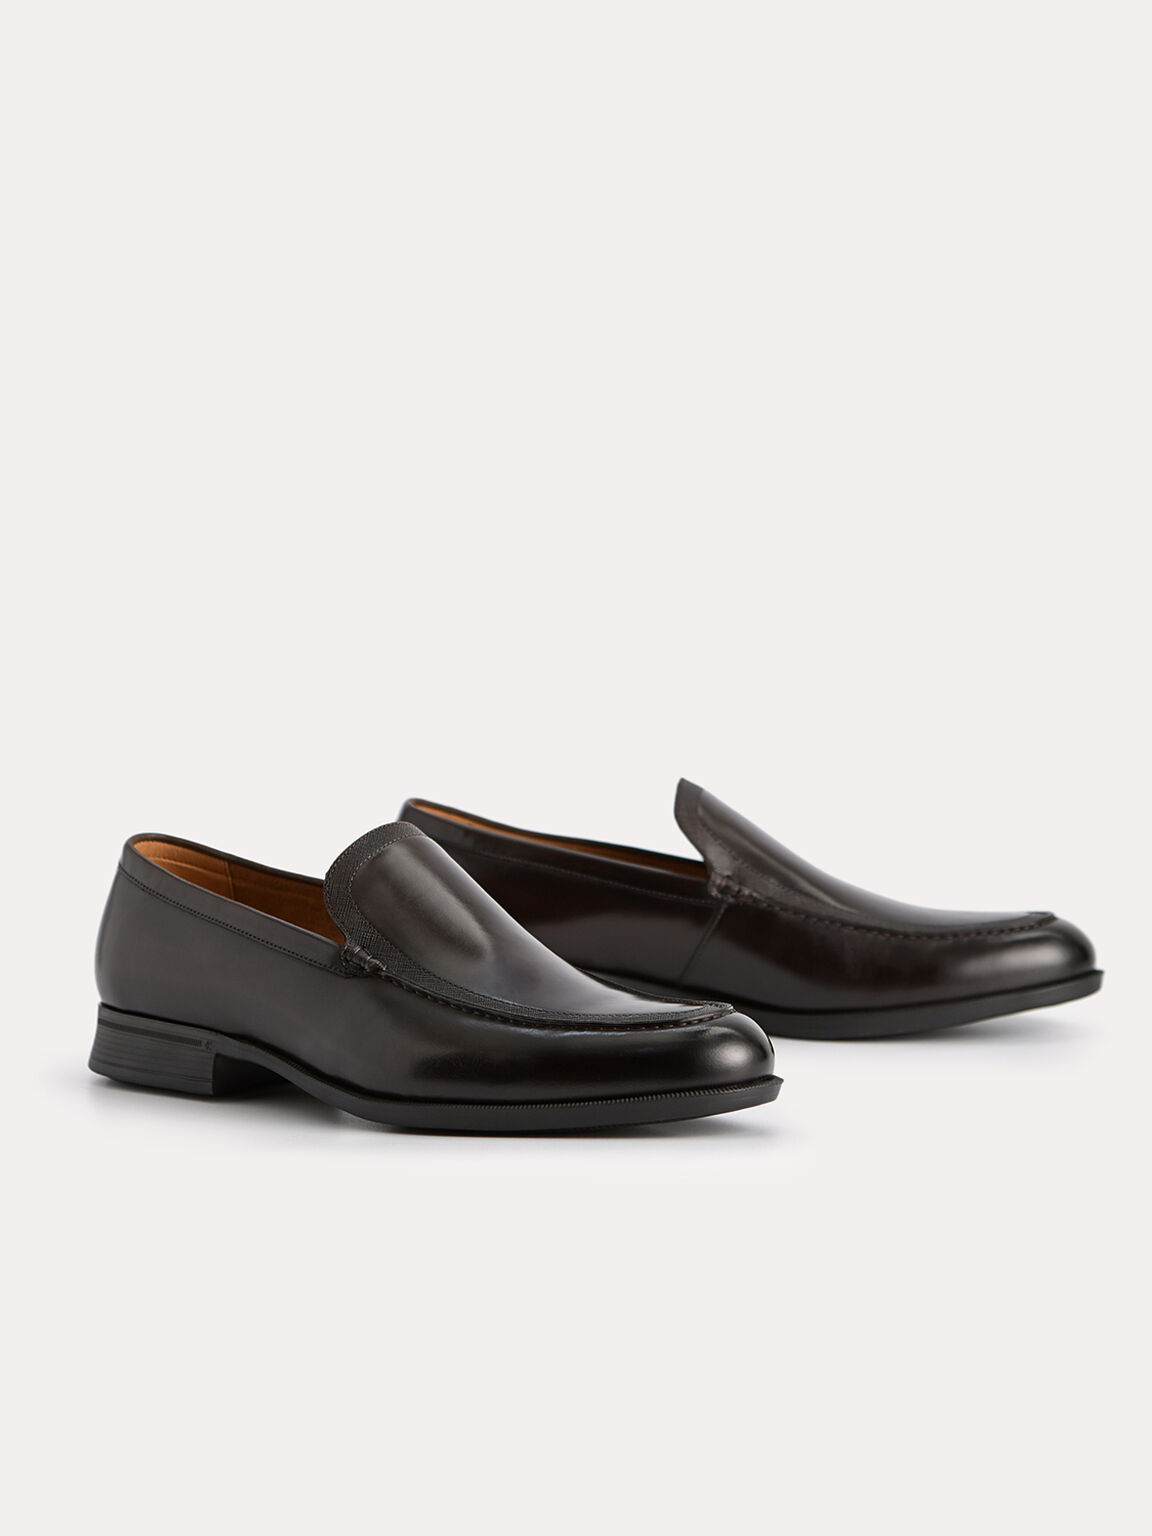 Burnished Leather Loafers, Dark Brown, hi-res